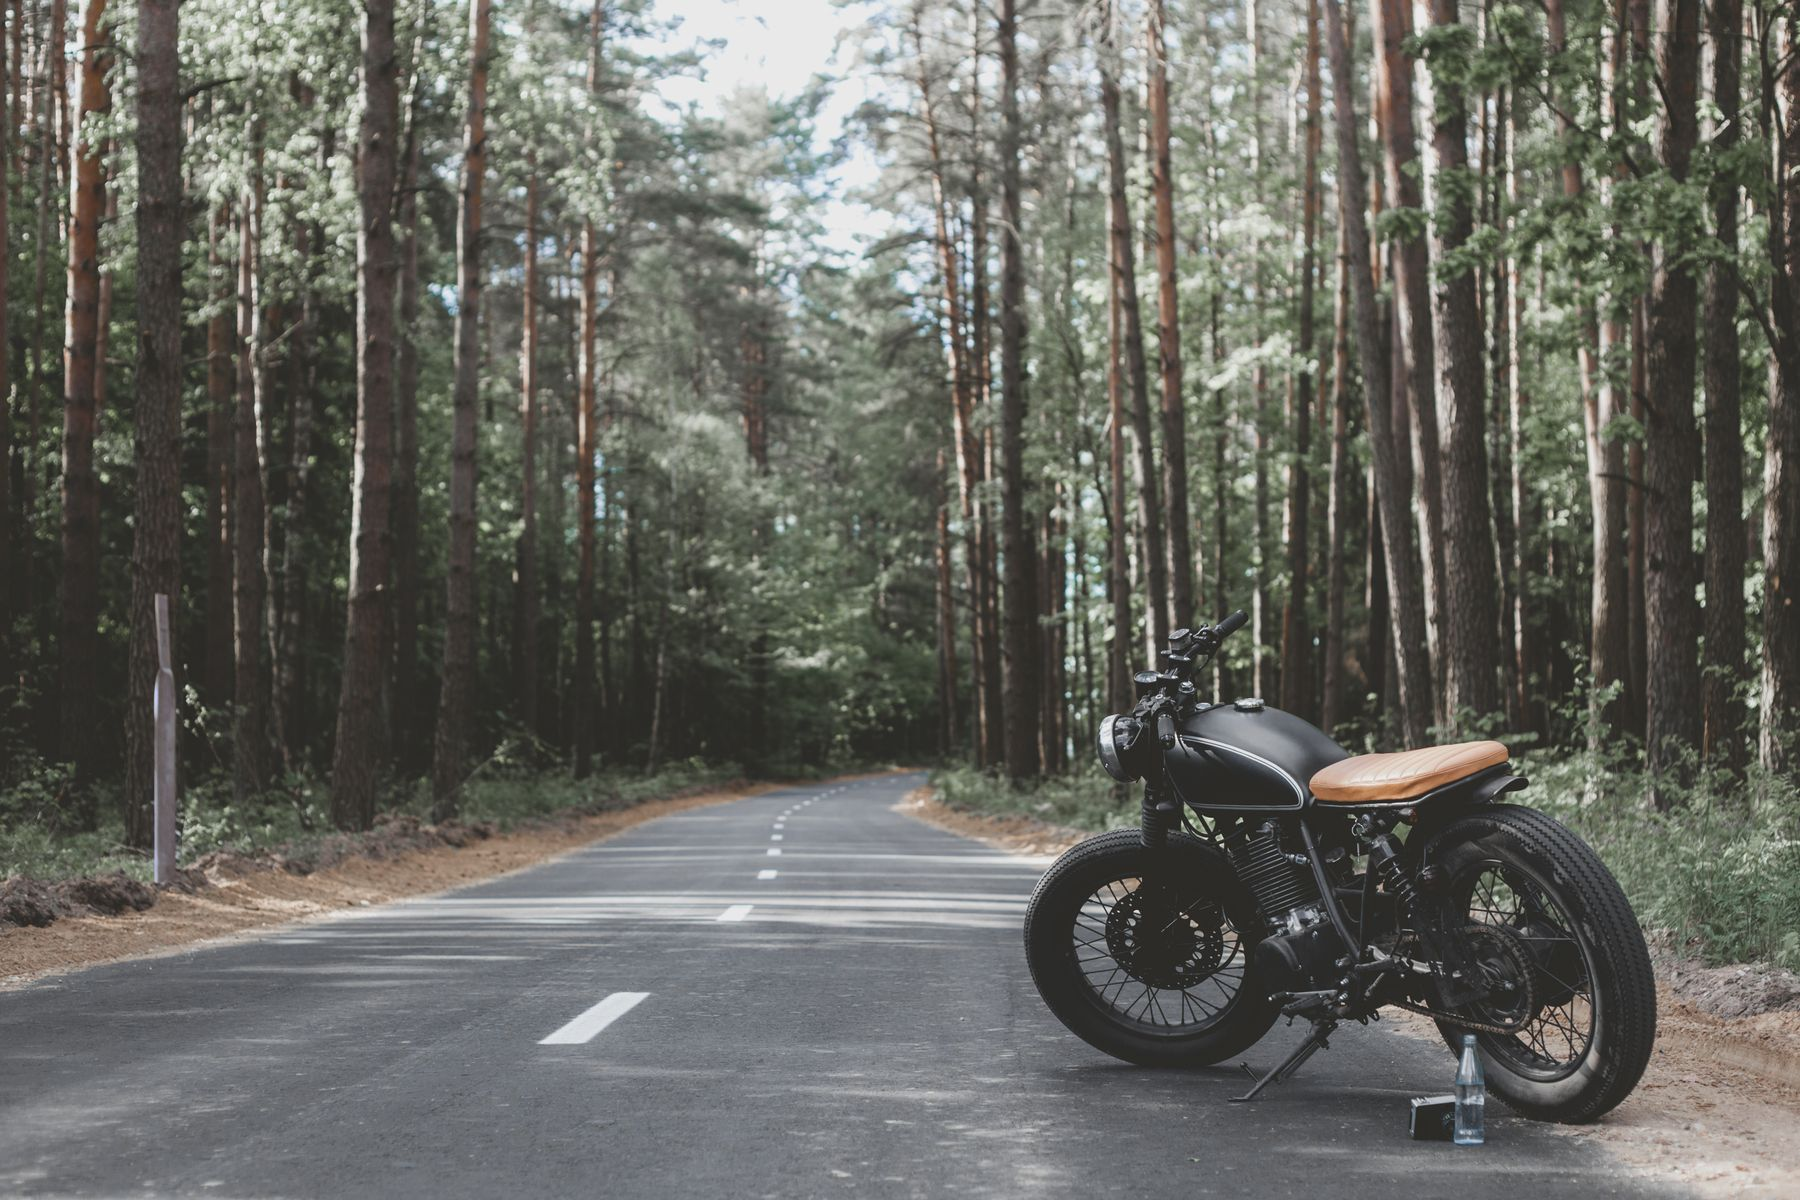 How to Clean Your Motorcycle shutterstock 655905334